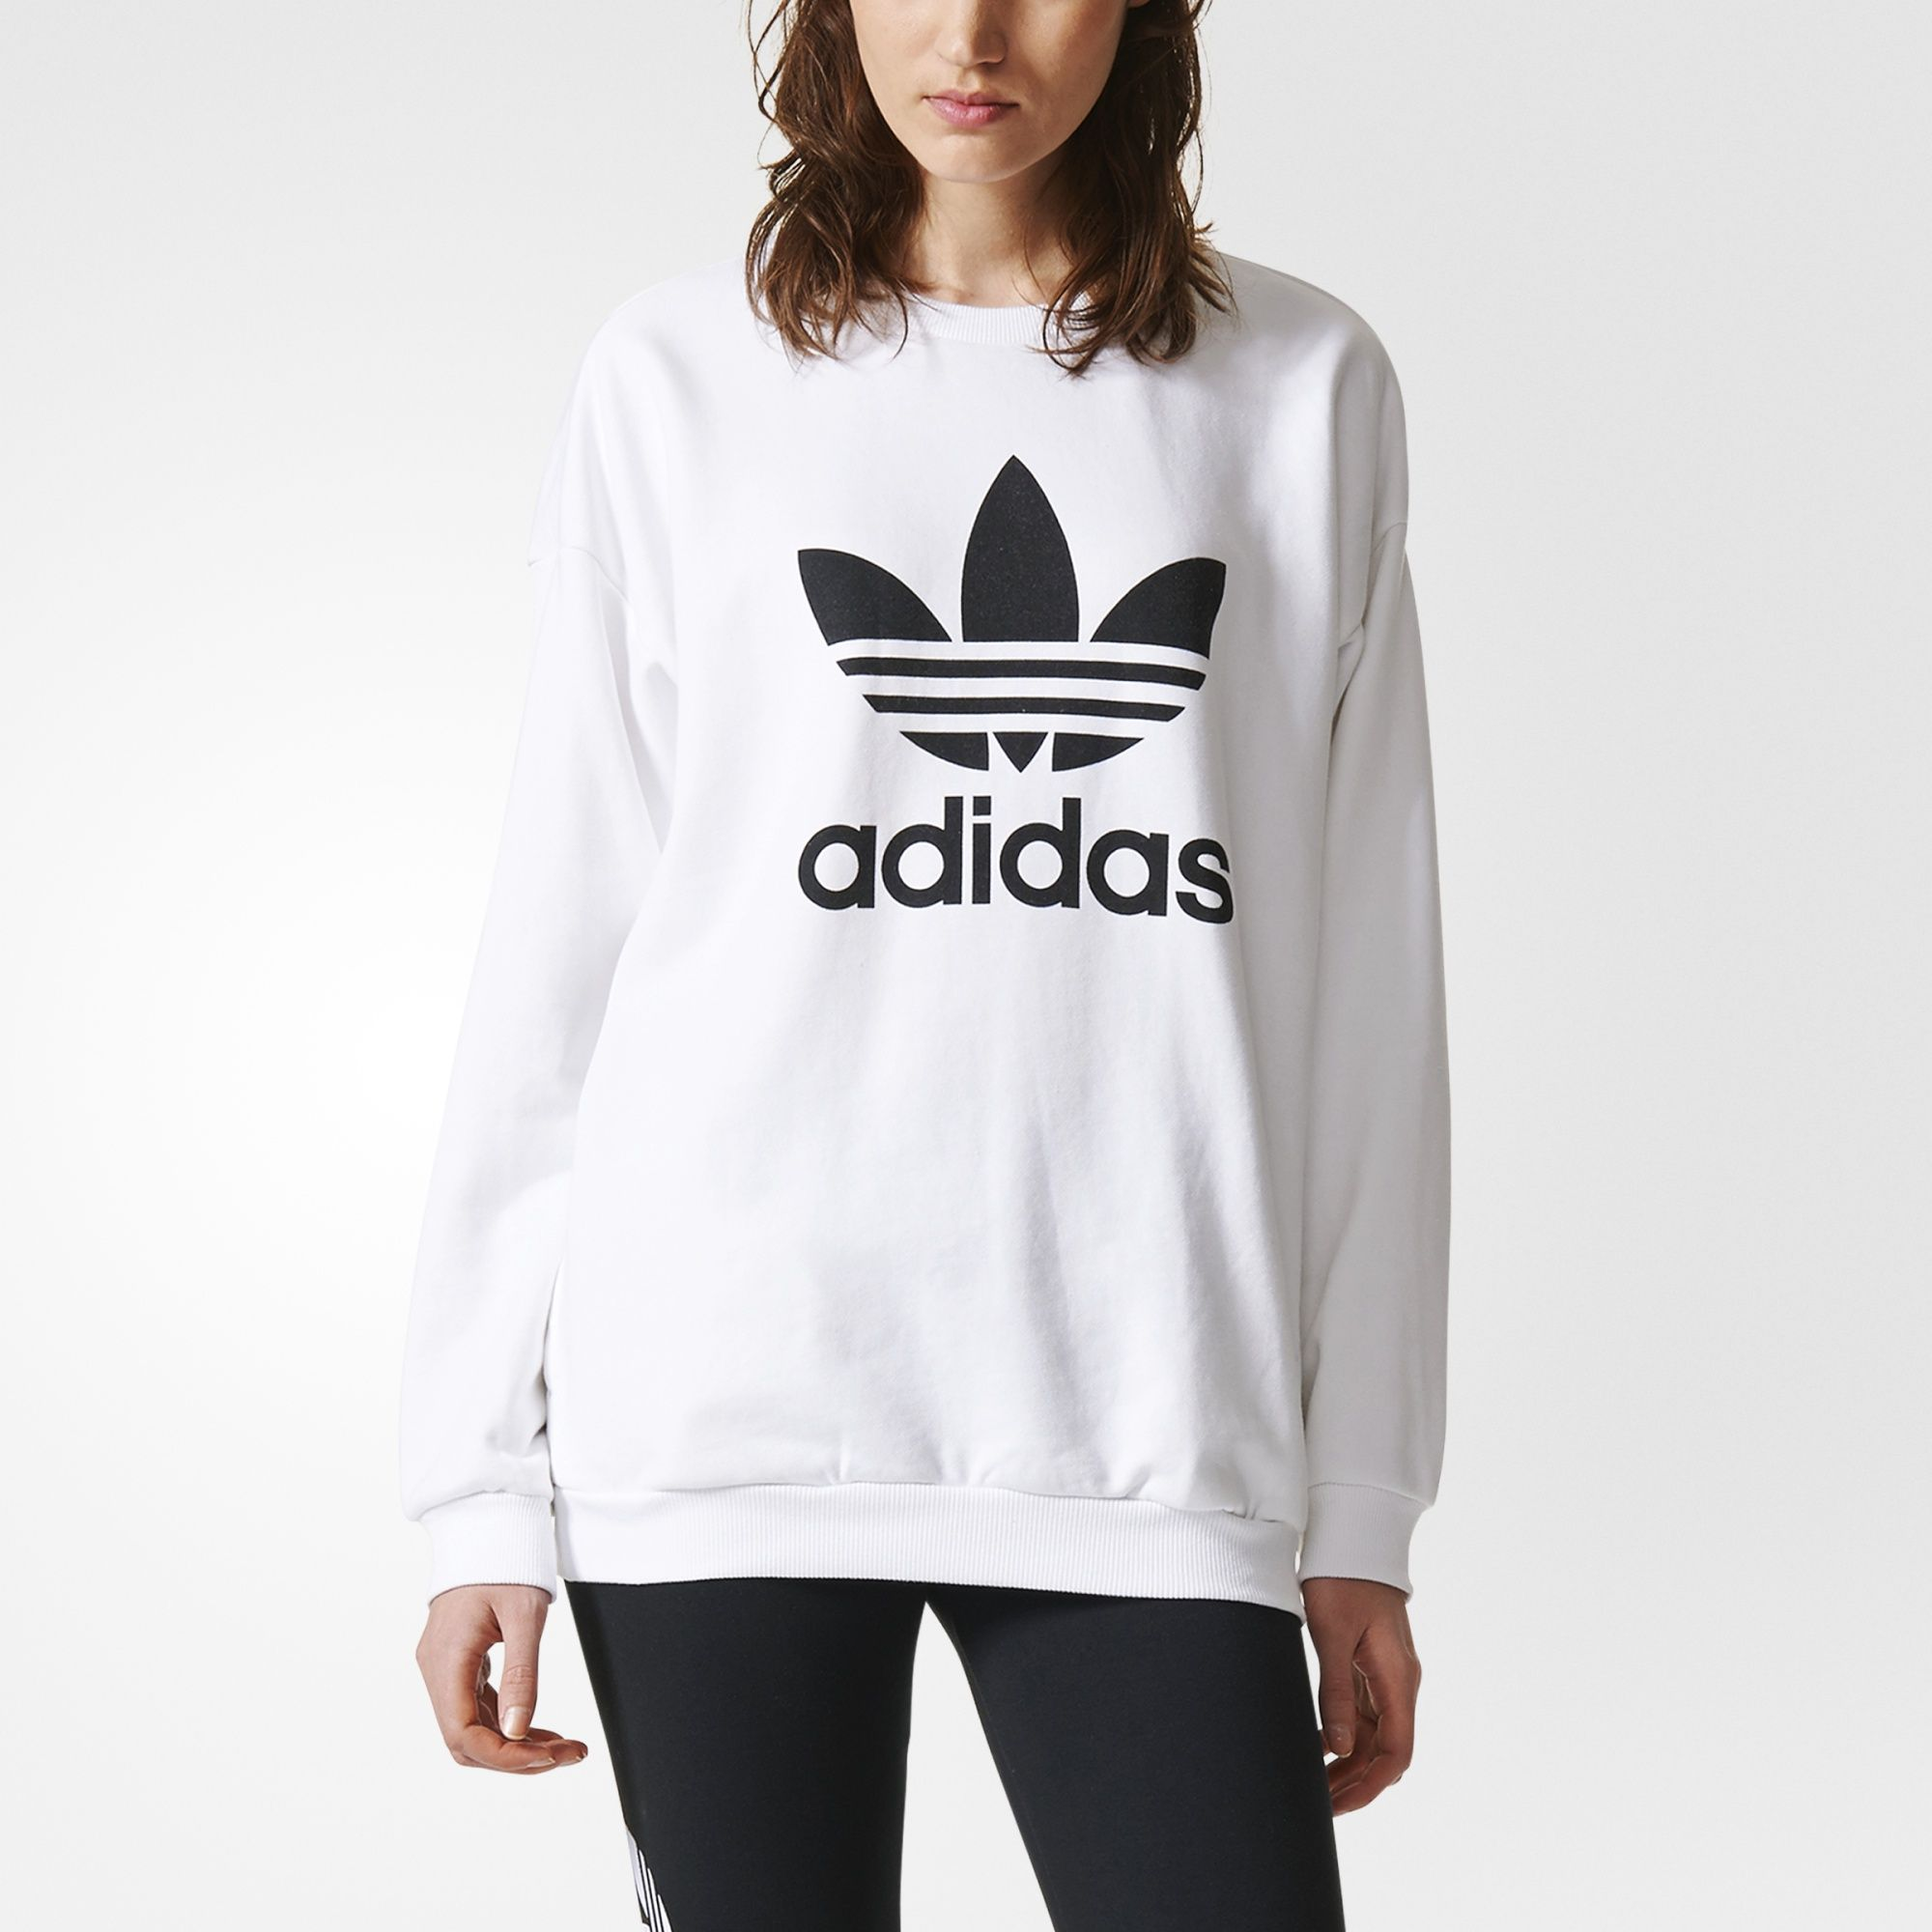 A Familiar Favourite For Lounging Comfortably This Women S Relaxed Fit Sweatshirt Features Soft Adidas Sweatshirt Outfits Sweatshirts Adidas Sweatshirt Women [ 2000 x 2000 Pixel ]